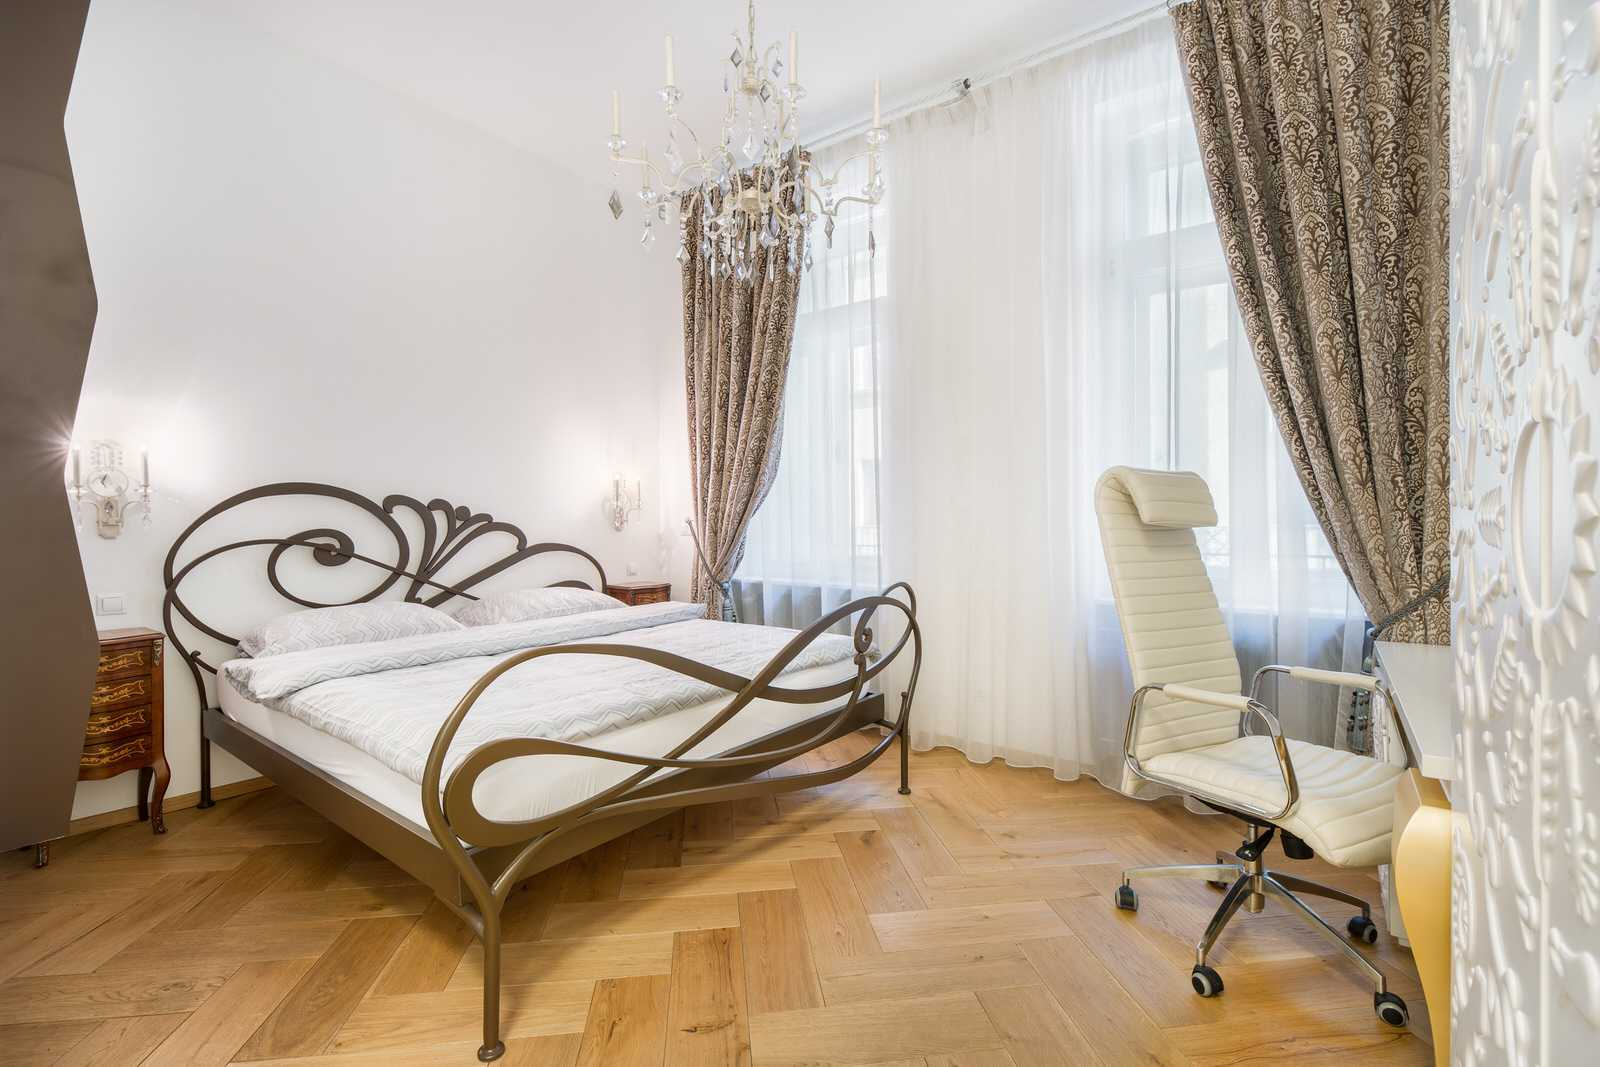 Ljubljana 2-bedroom Beethovnova apartment's master bedroom with working desk and an office chair